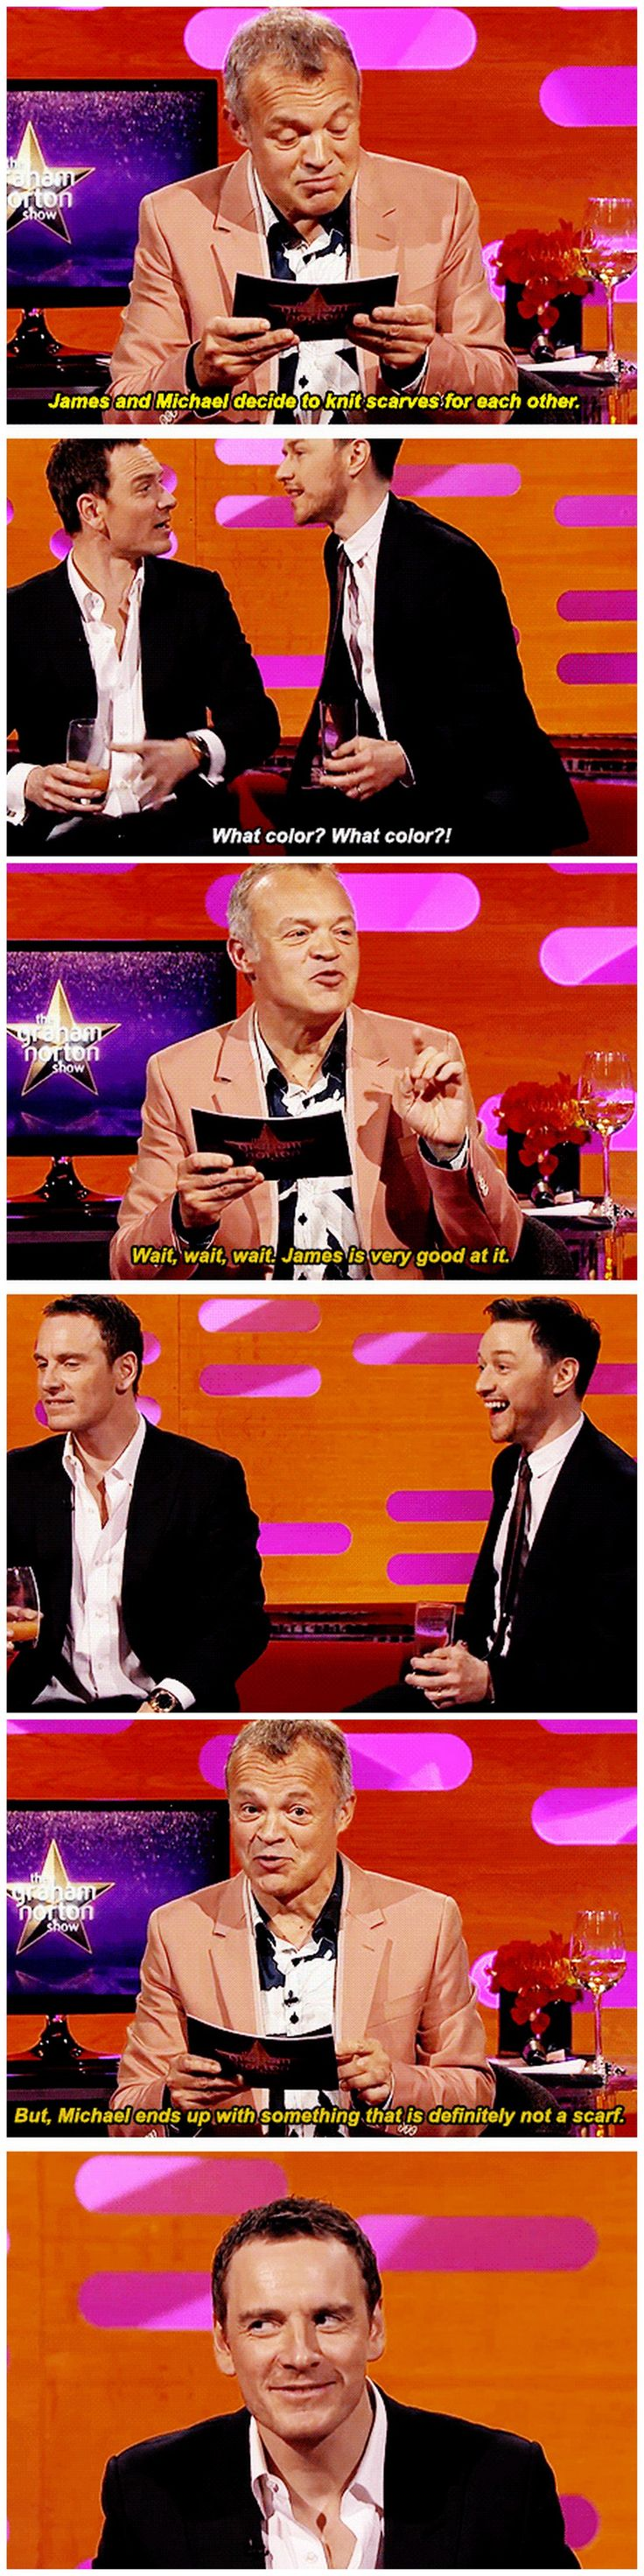 [gifset] Graham Norton reads a James McAvoy and Michael Fassbender fan fiction summary to James McAvoy and Michael Fassbender. LOL.... their expressions are hilarious!